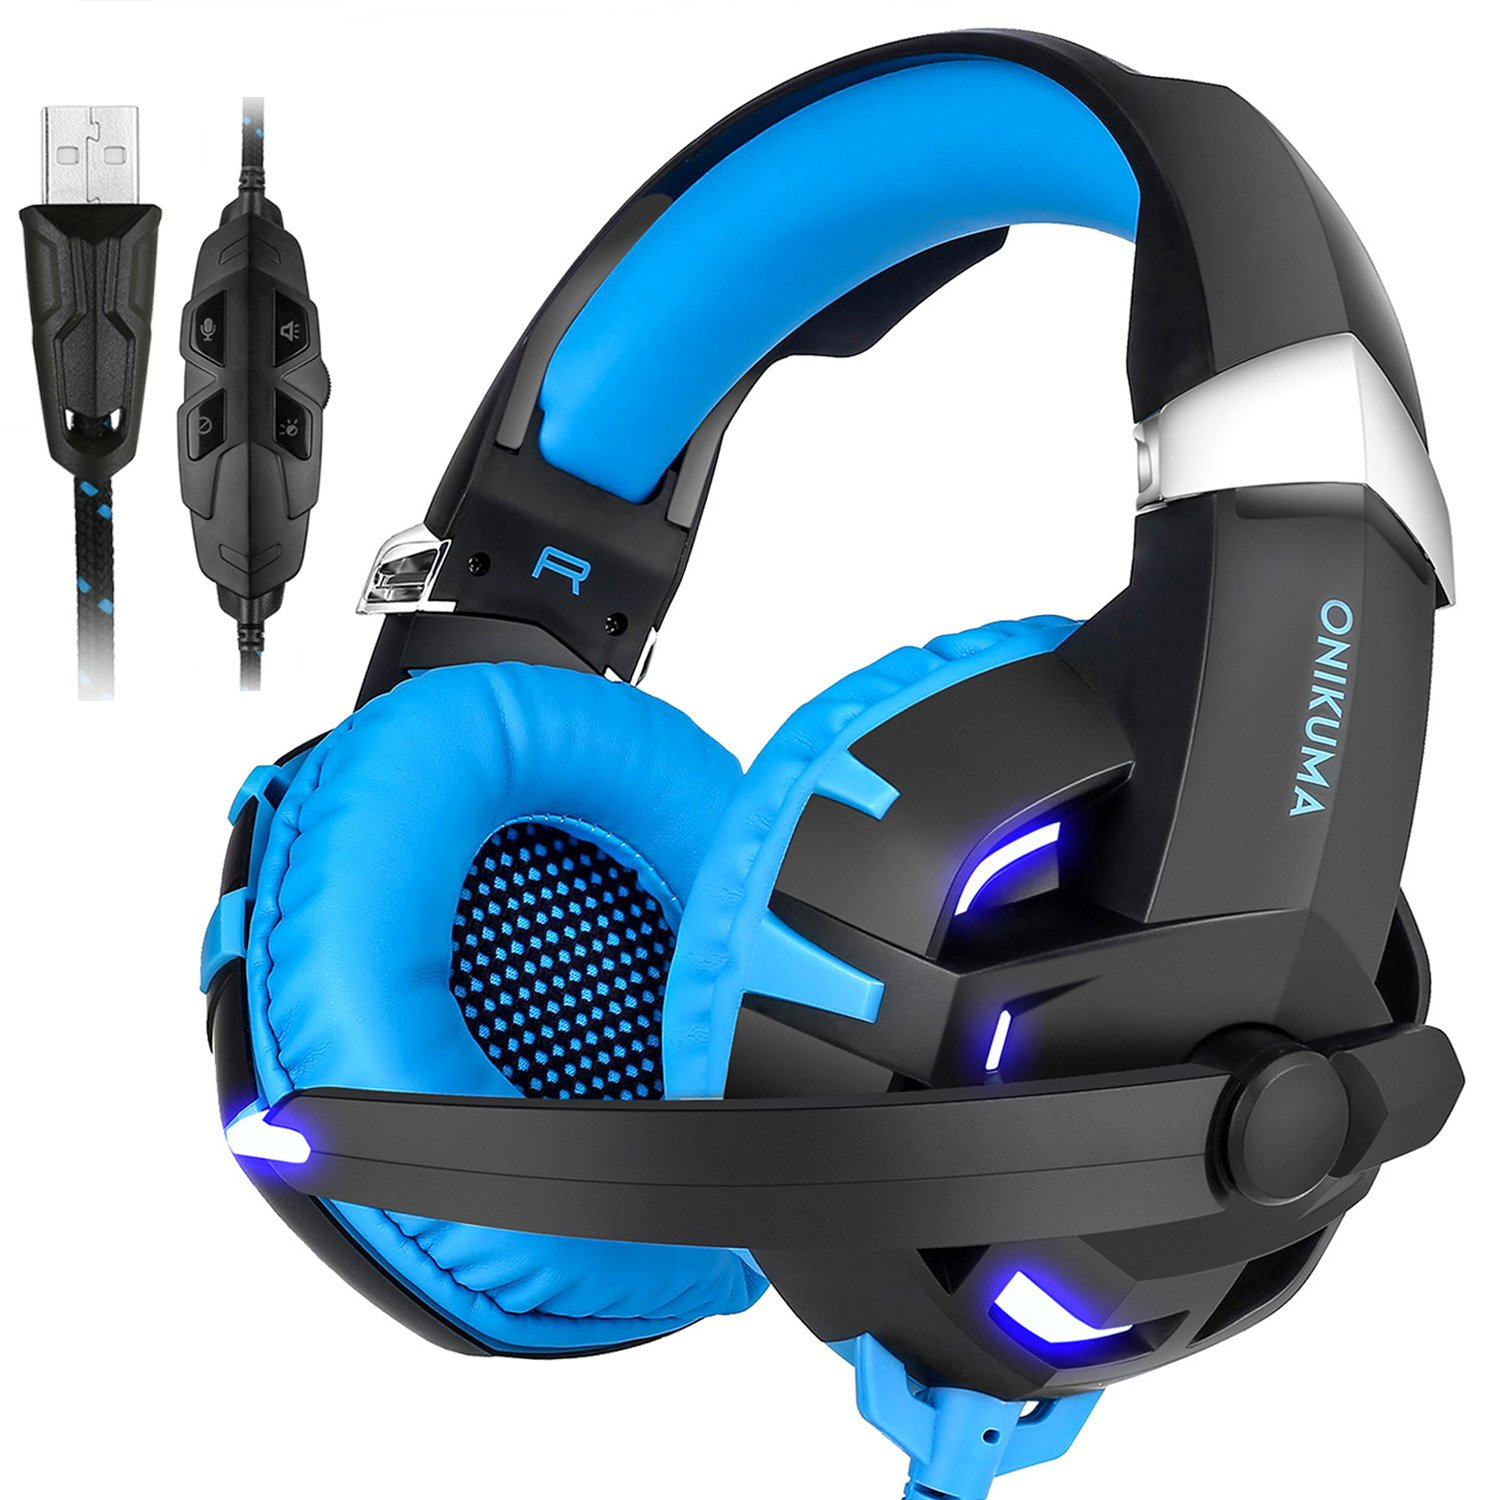 BASEIN Gaming Headphone, USB 7.1 Channel Noise Cancelling Over Ear Computer Headphones with Microphone Gaming Headset for PS4, PC, Laptop